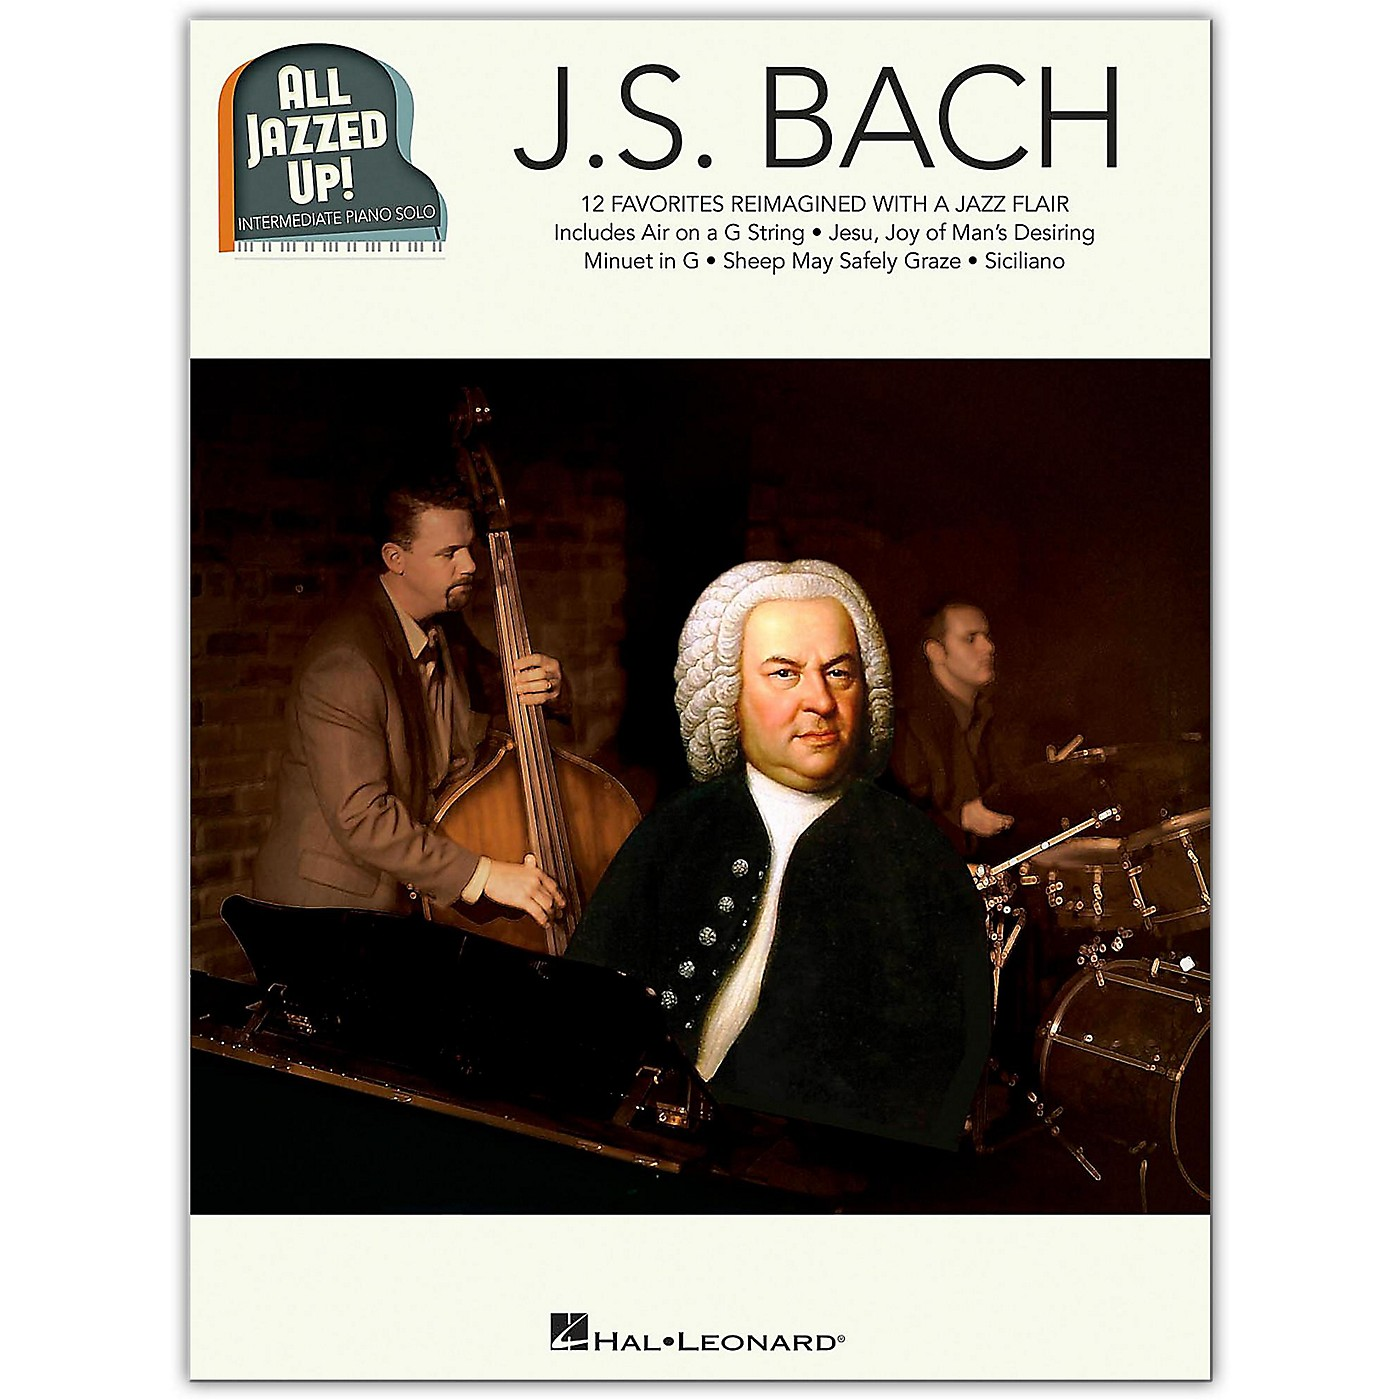 Hal Leonard J.S. Bach - All Jazzed Up!  Intermediate Piano Solo Songbook thumbnail